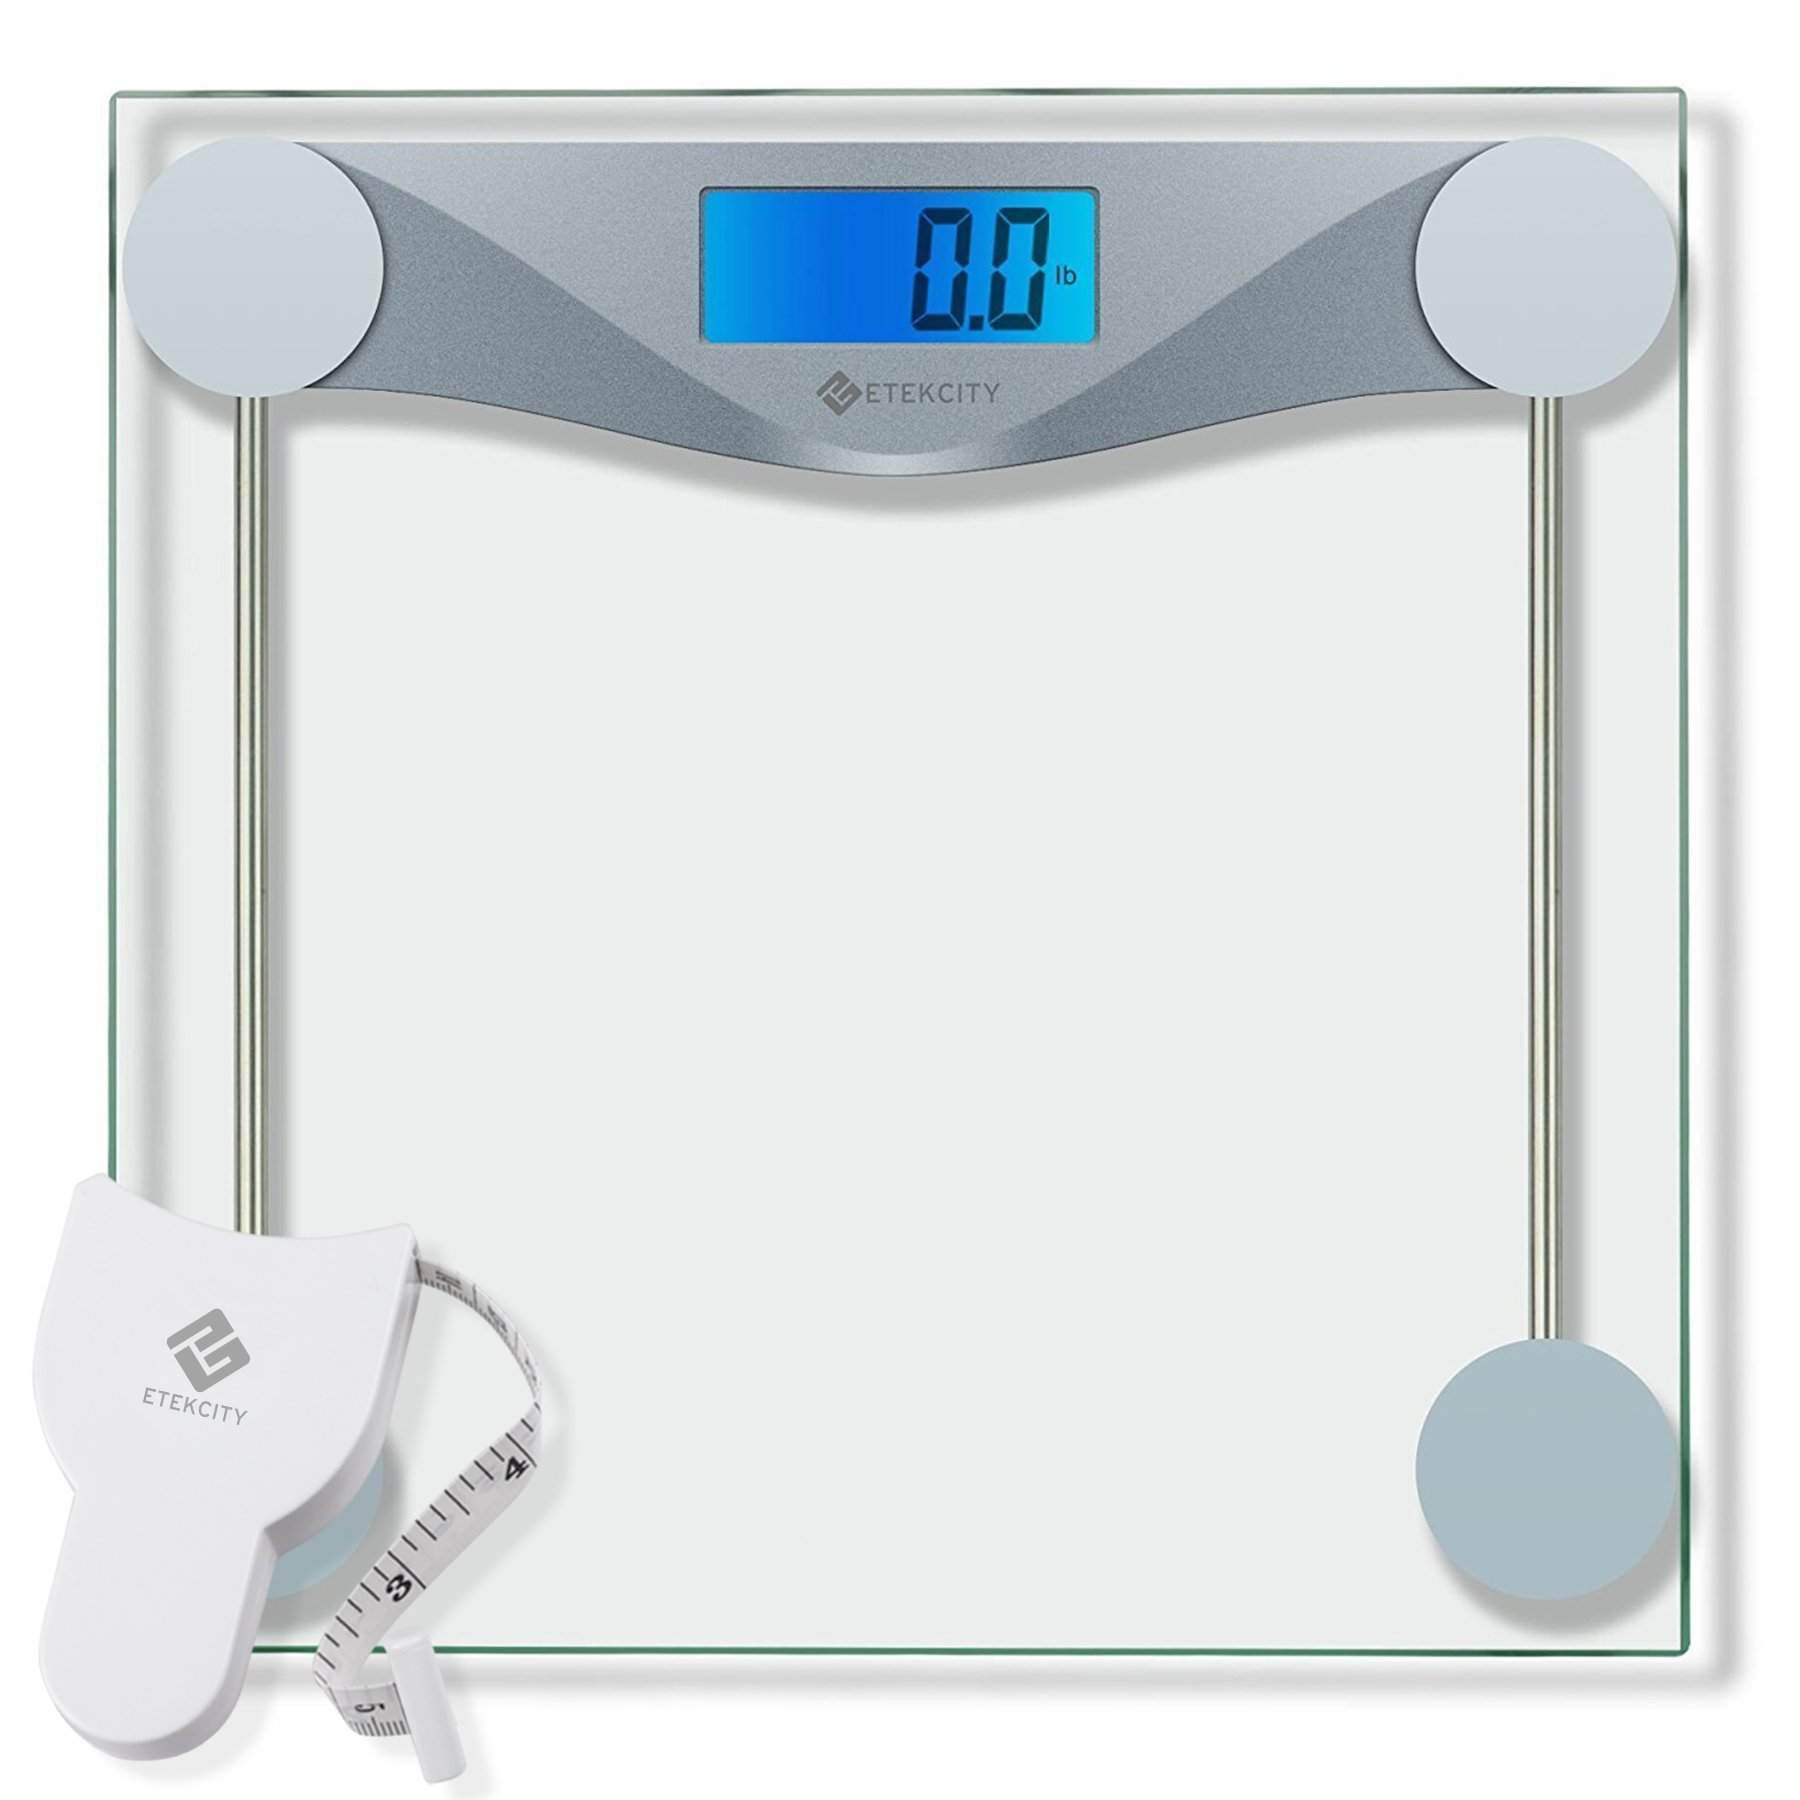 Etekcity Digital Body Weight Bathroom Scale With Body Tape Measure, Tempered Glass, 400 Pounds by Etekcity